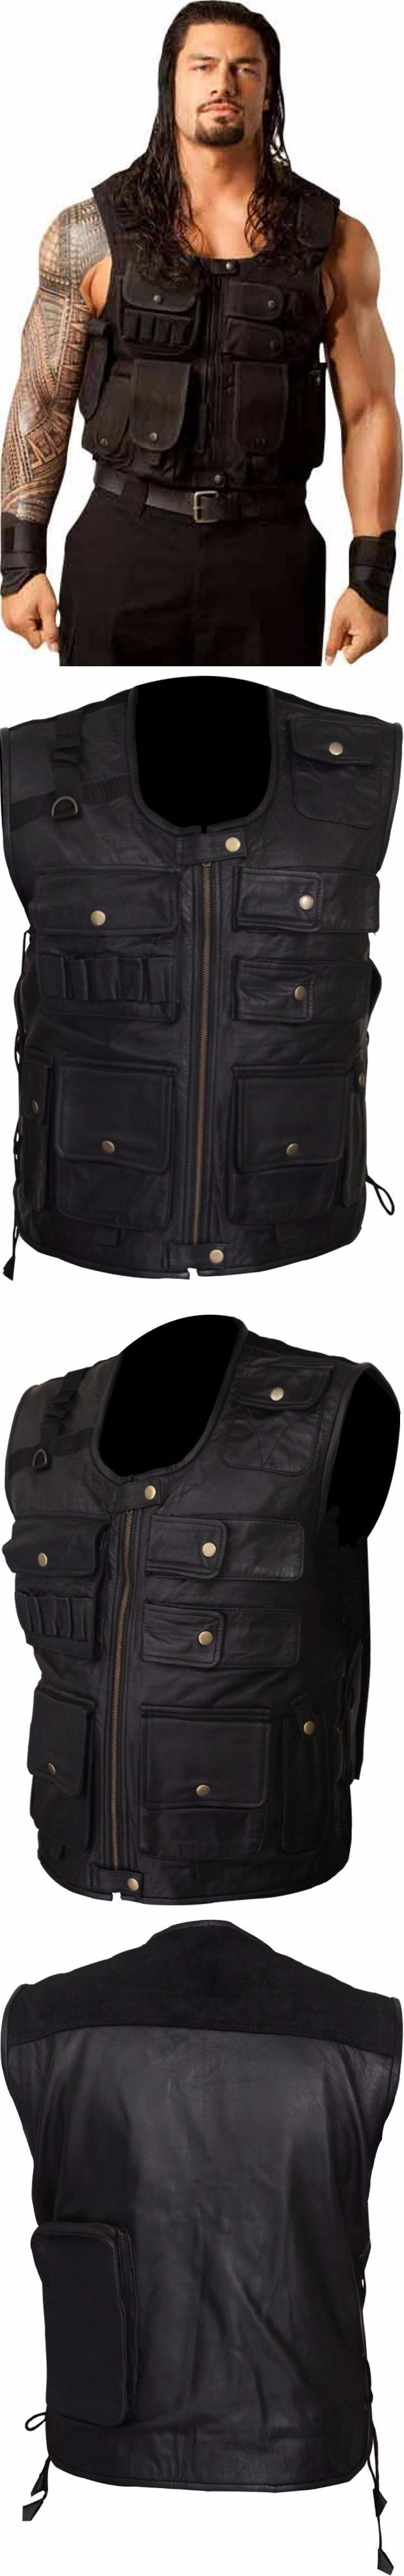 """Inspired from American Professional Wrestler Roman Reigns. """"Smart Seller"""" Present's WWE Roman Reigns Shield Tactical Real Leather Vest for Men. Made from 100% Black Real Leather You can Wear This Impressive Vest in All Season, Parties, Casual Wearing, Friend's Outing, Dates, and more. Available at Our Online Store.  #romanreigns #wwe #wwf #lovers #fans #boysfashion #boyscollection #menfashion #shopping #hot #sexy #stylish #costume #menclothing #menJacket #superhotfashion #parties #casual…"""